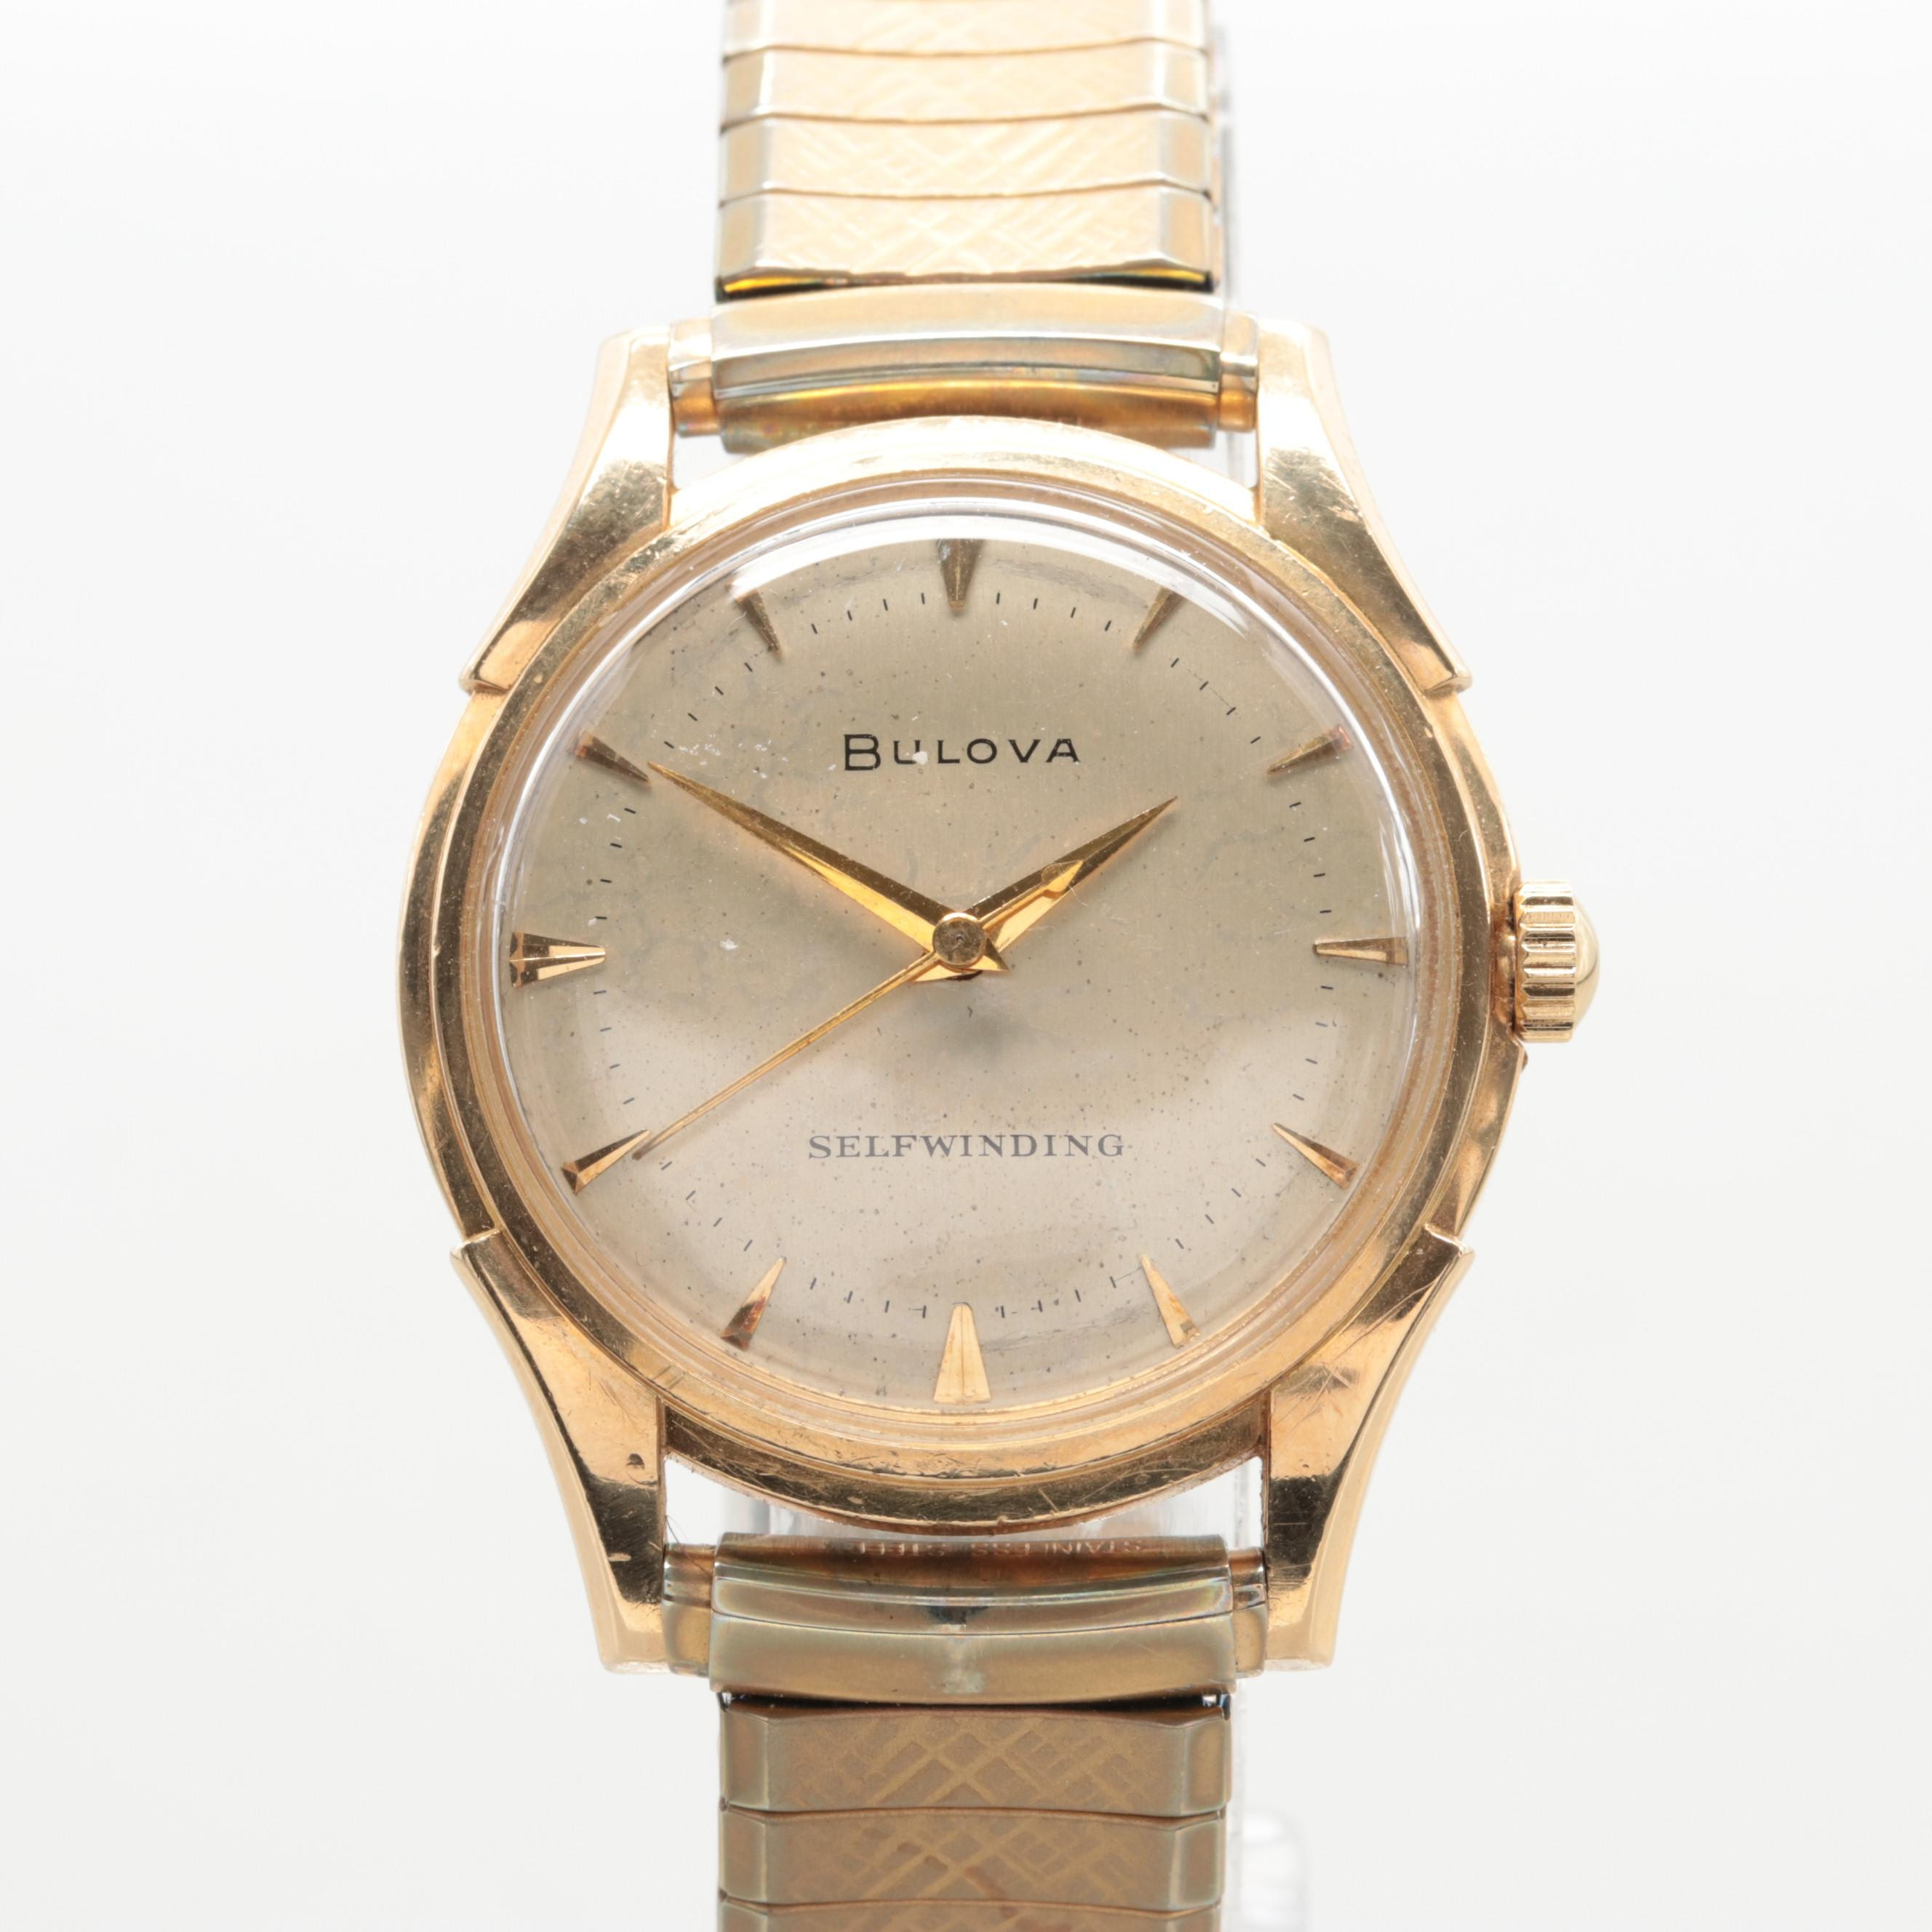 Bulova 14K Yellow Gold Self-Winding Wristwatch